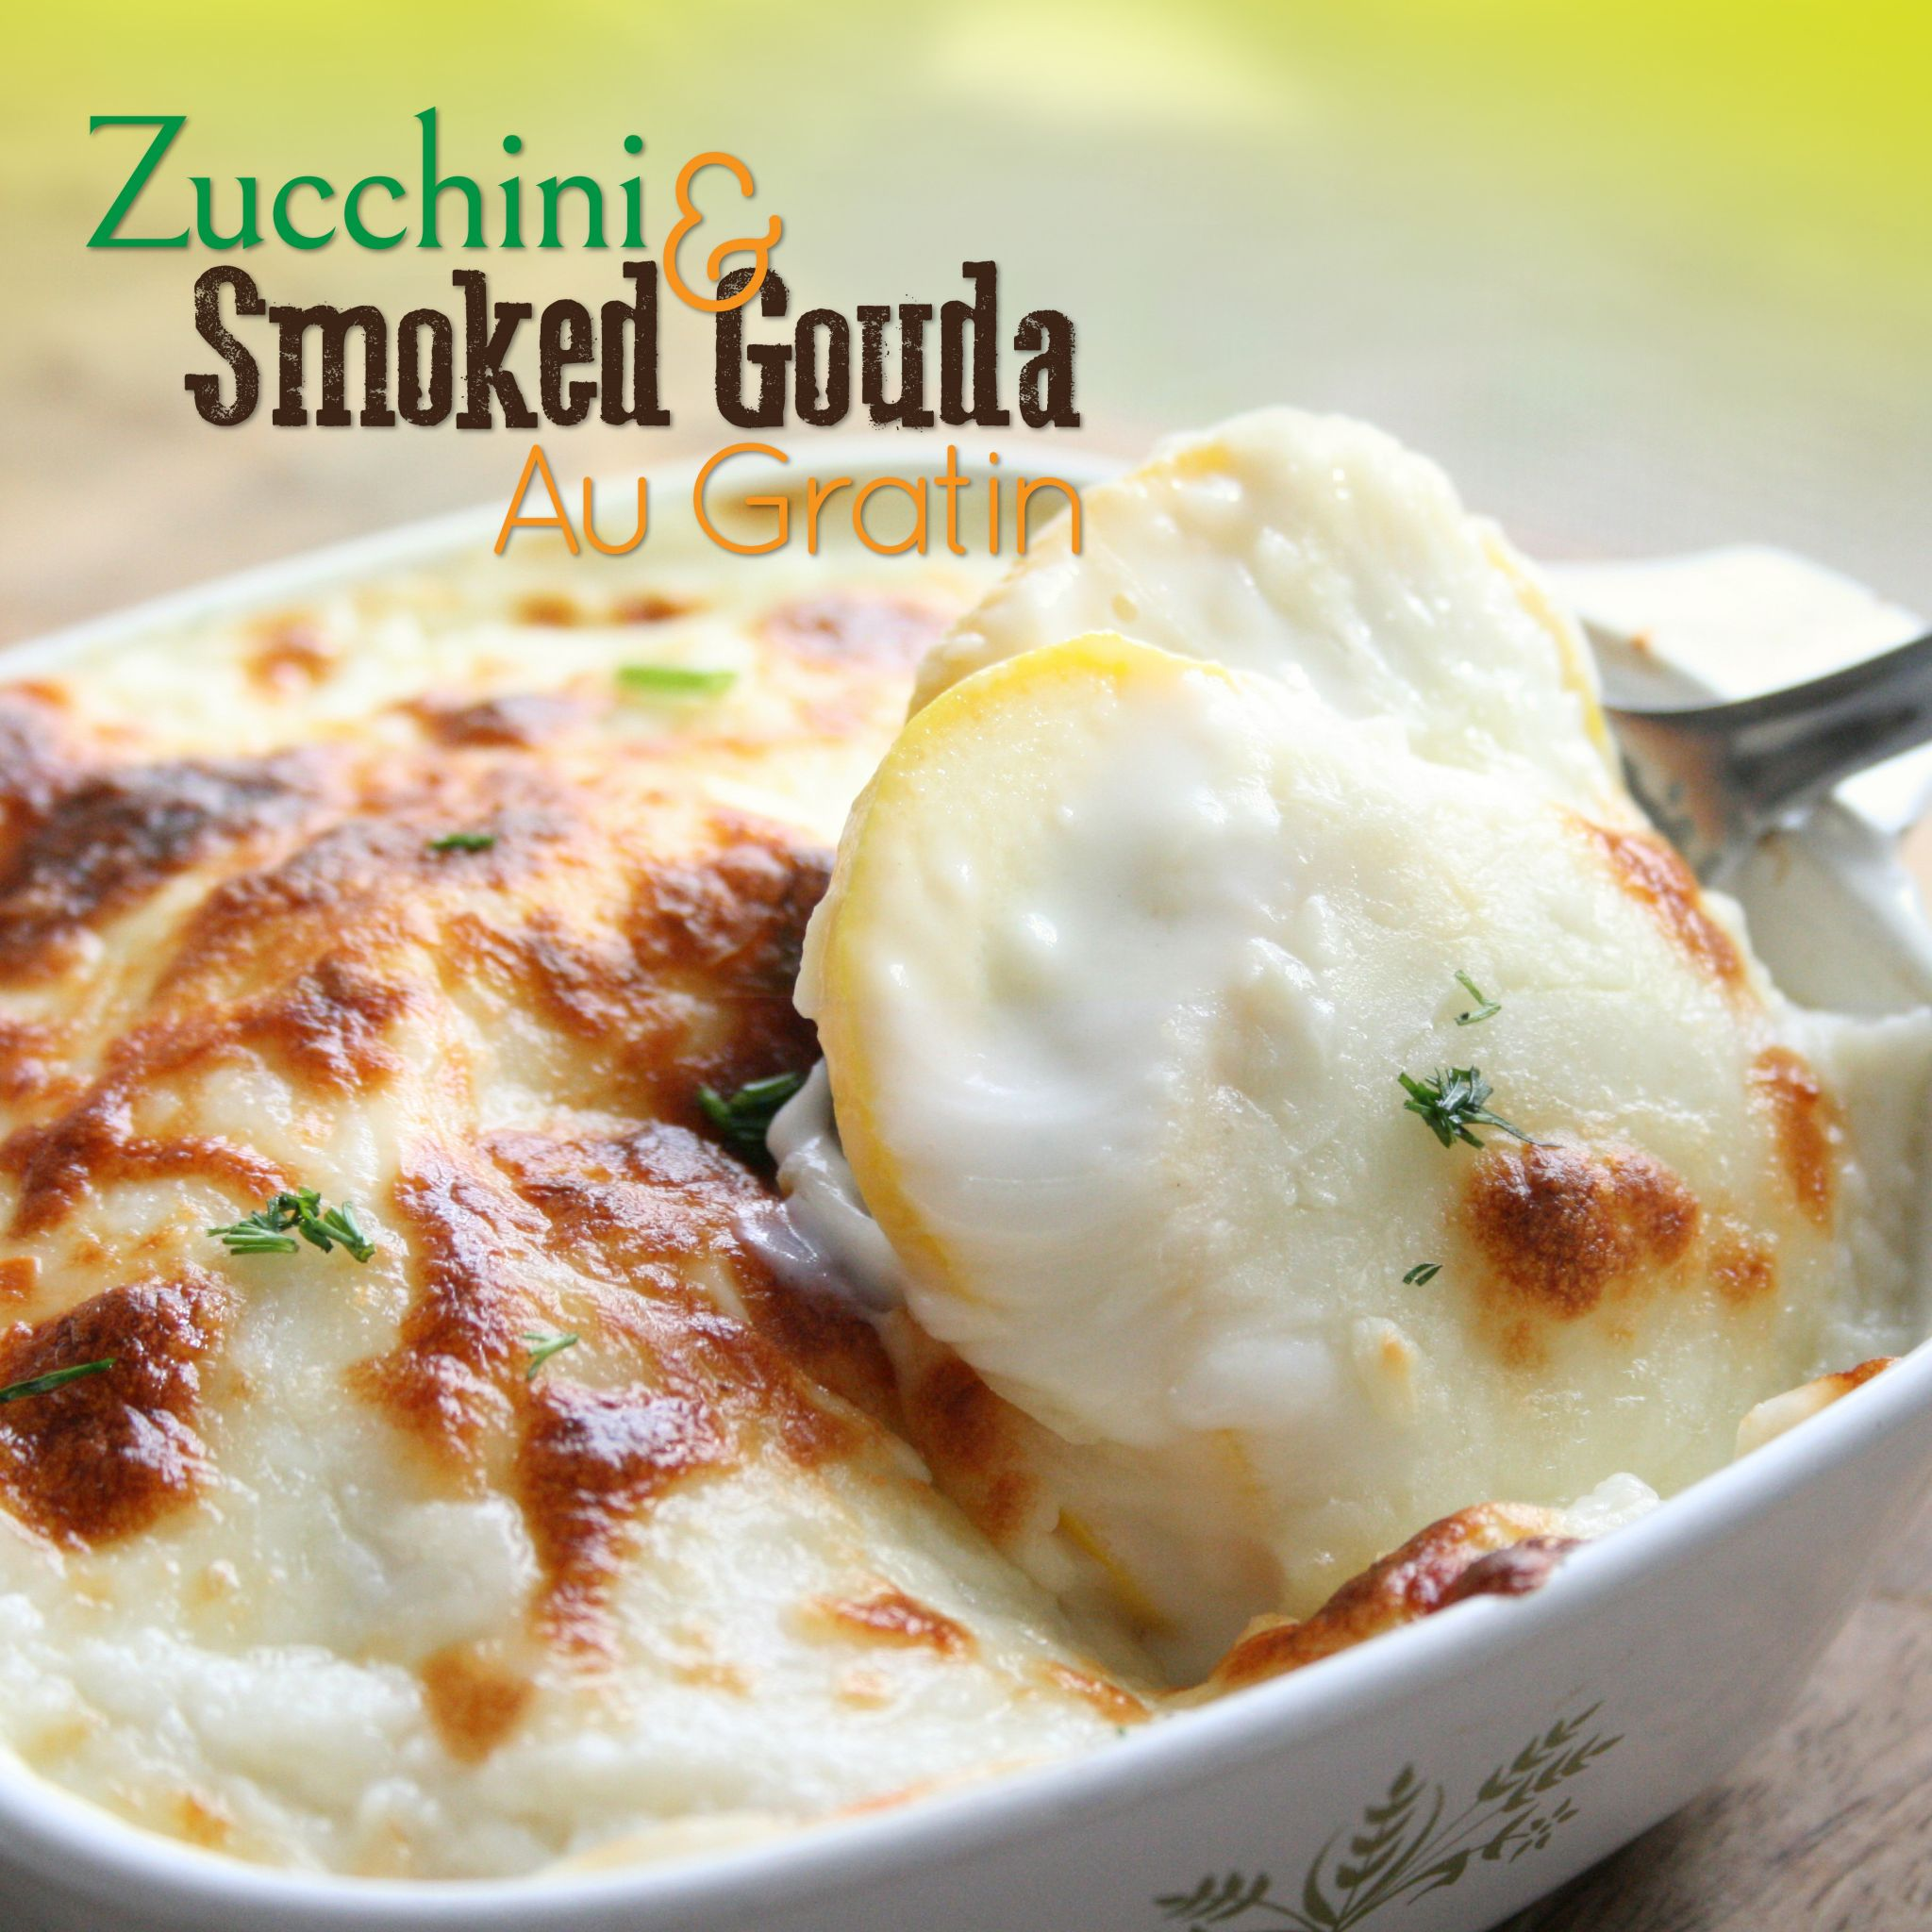 Zucchini and Smoked Gouda Au Gratin